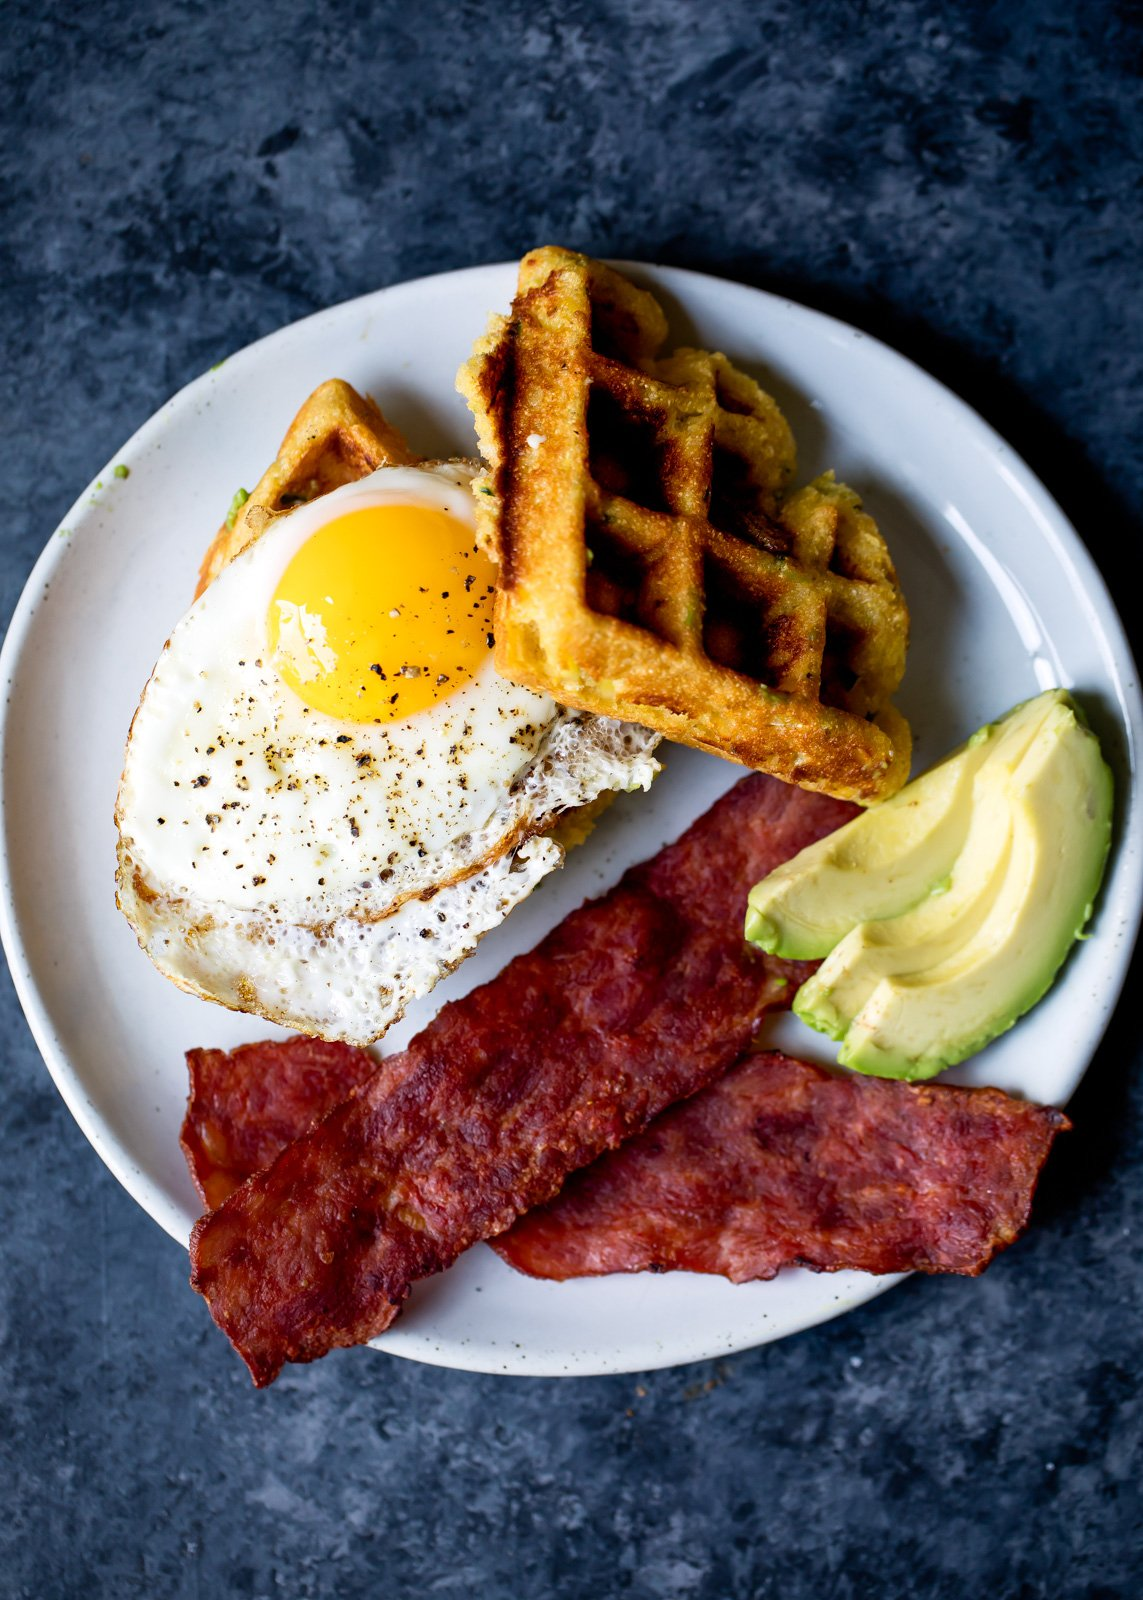 A savory breakfast featuring whole grain honey jalapeno zucchini cornbread waffles. Delicious, filling and perfect when topped with a fried egg and a side of turkey bacon!